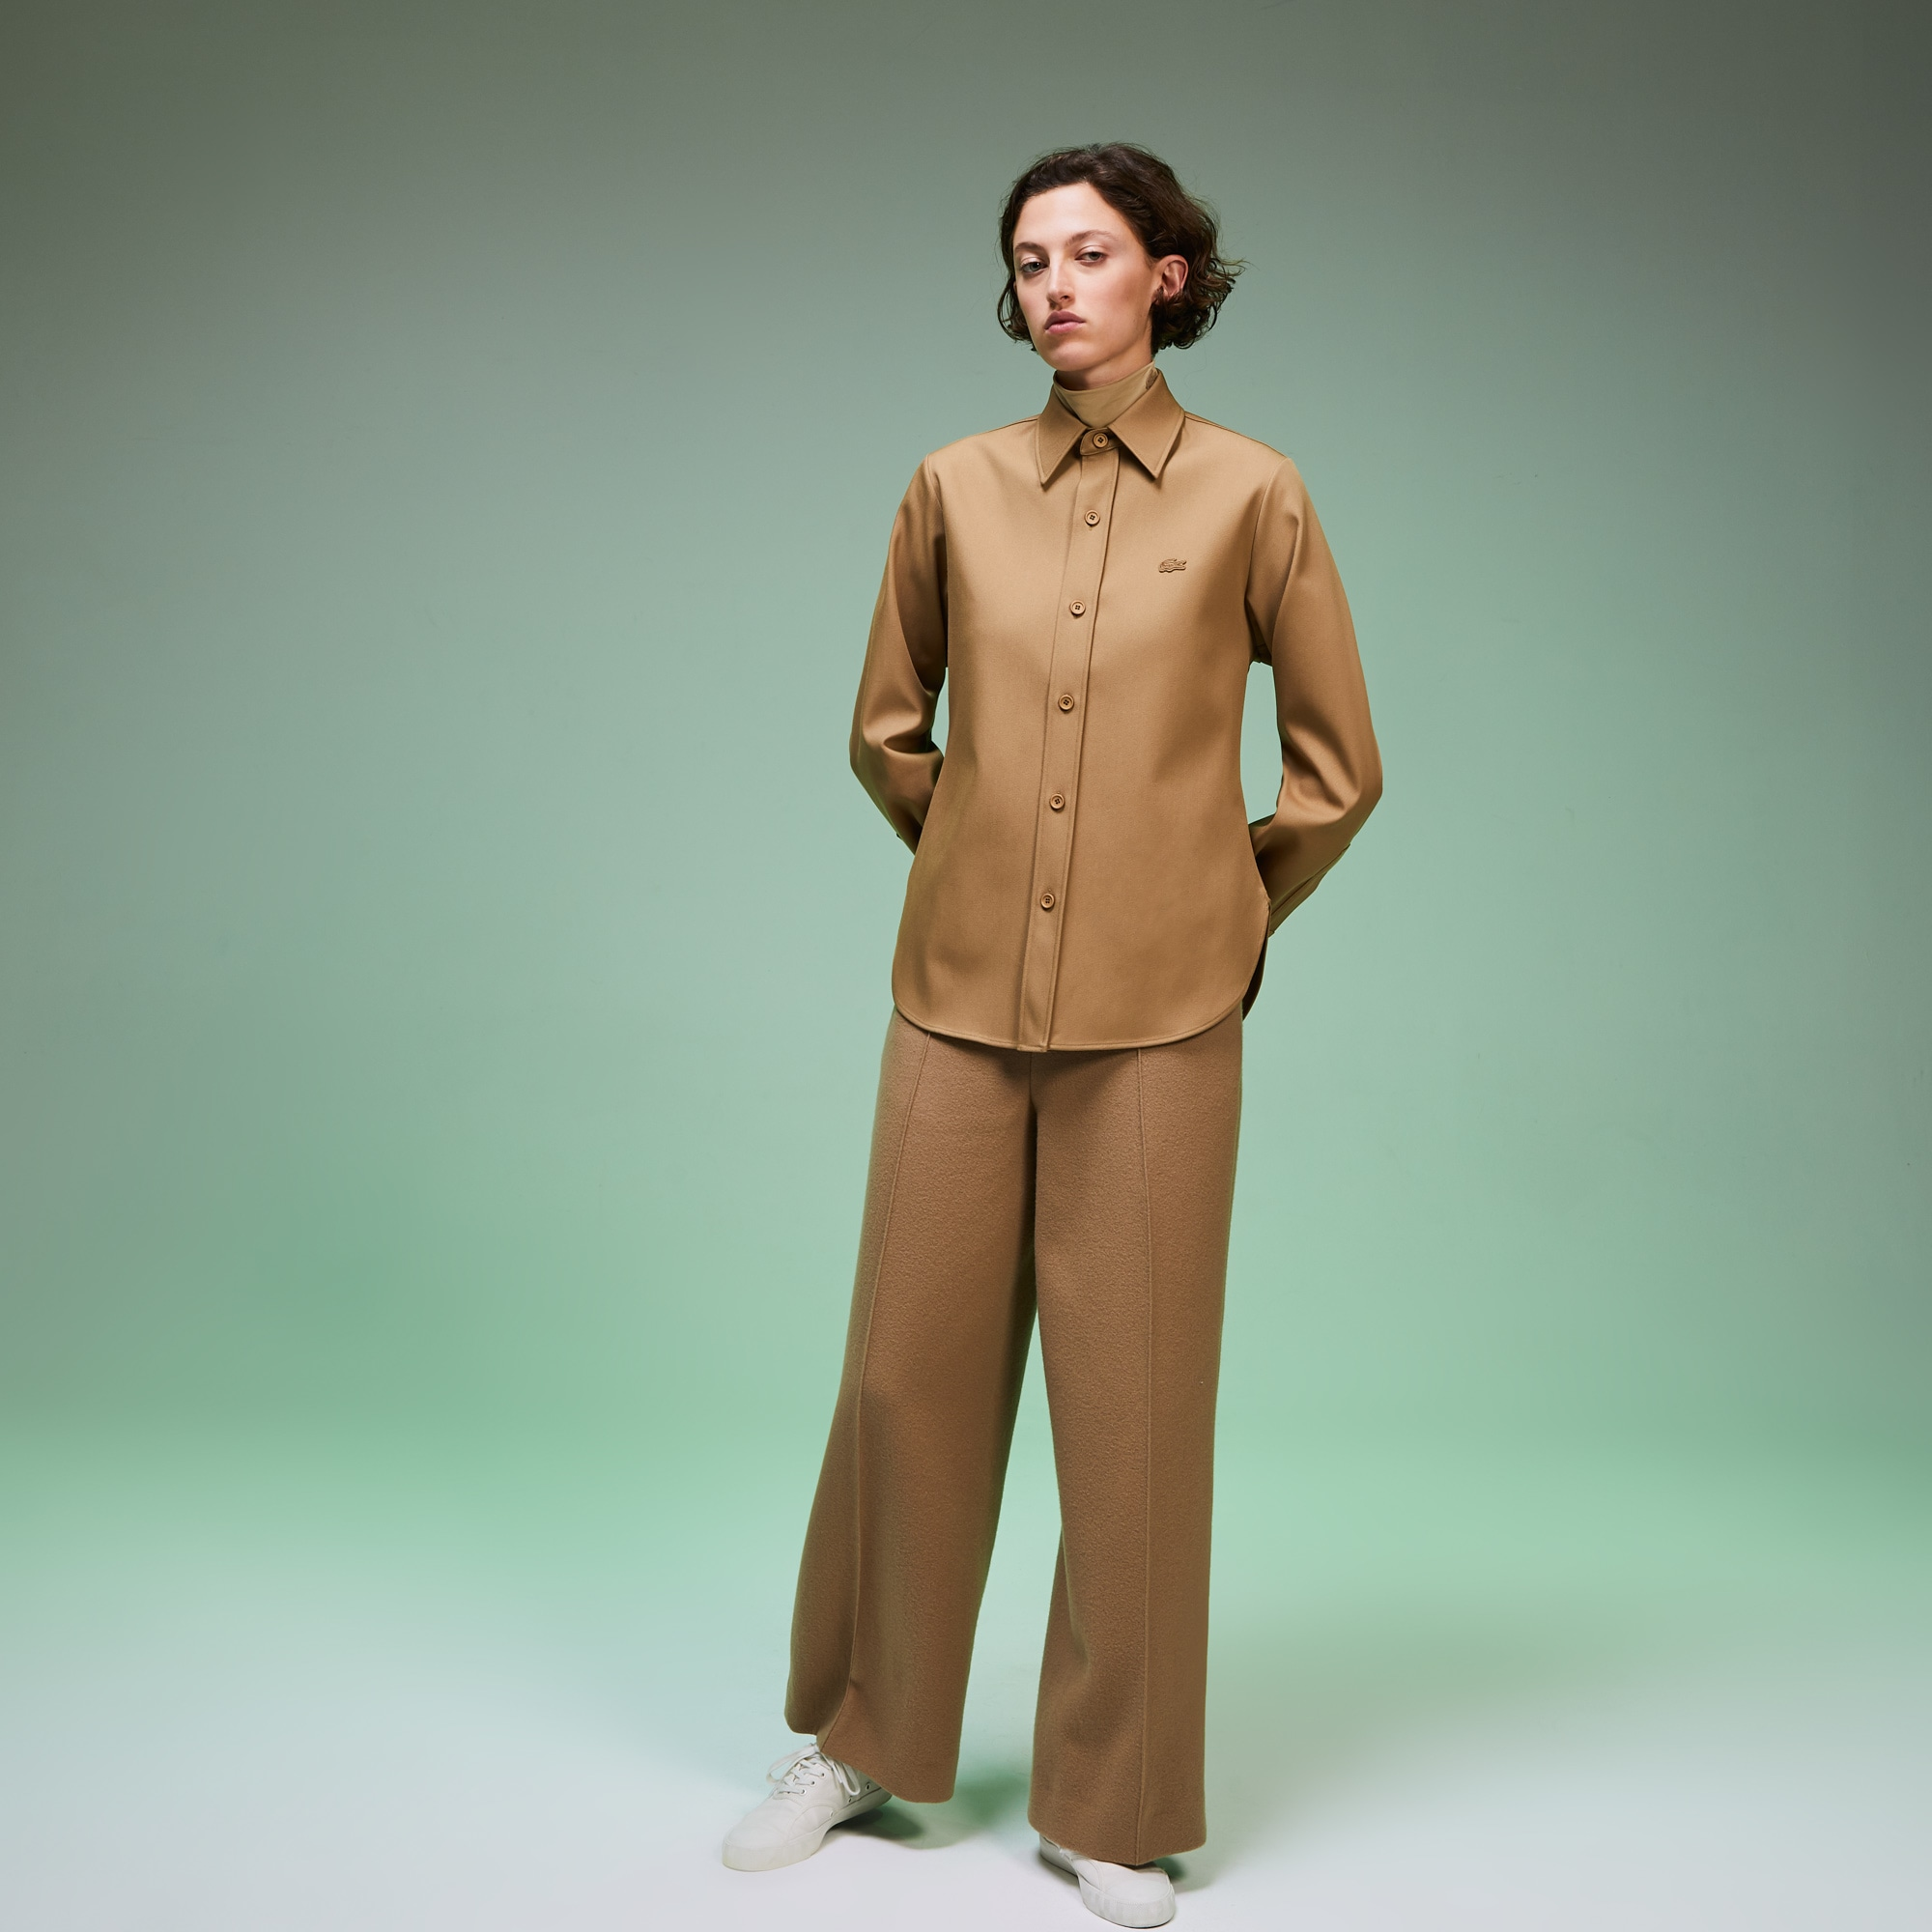 Women's Fashion Show Solid Wool Shirt